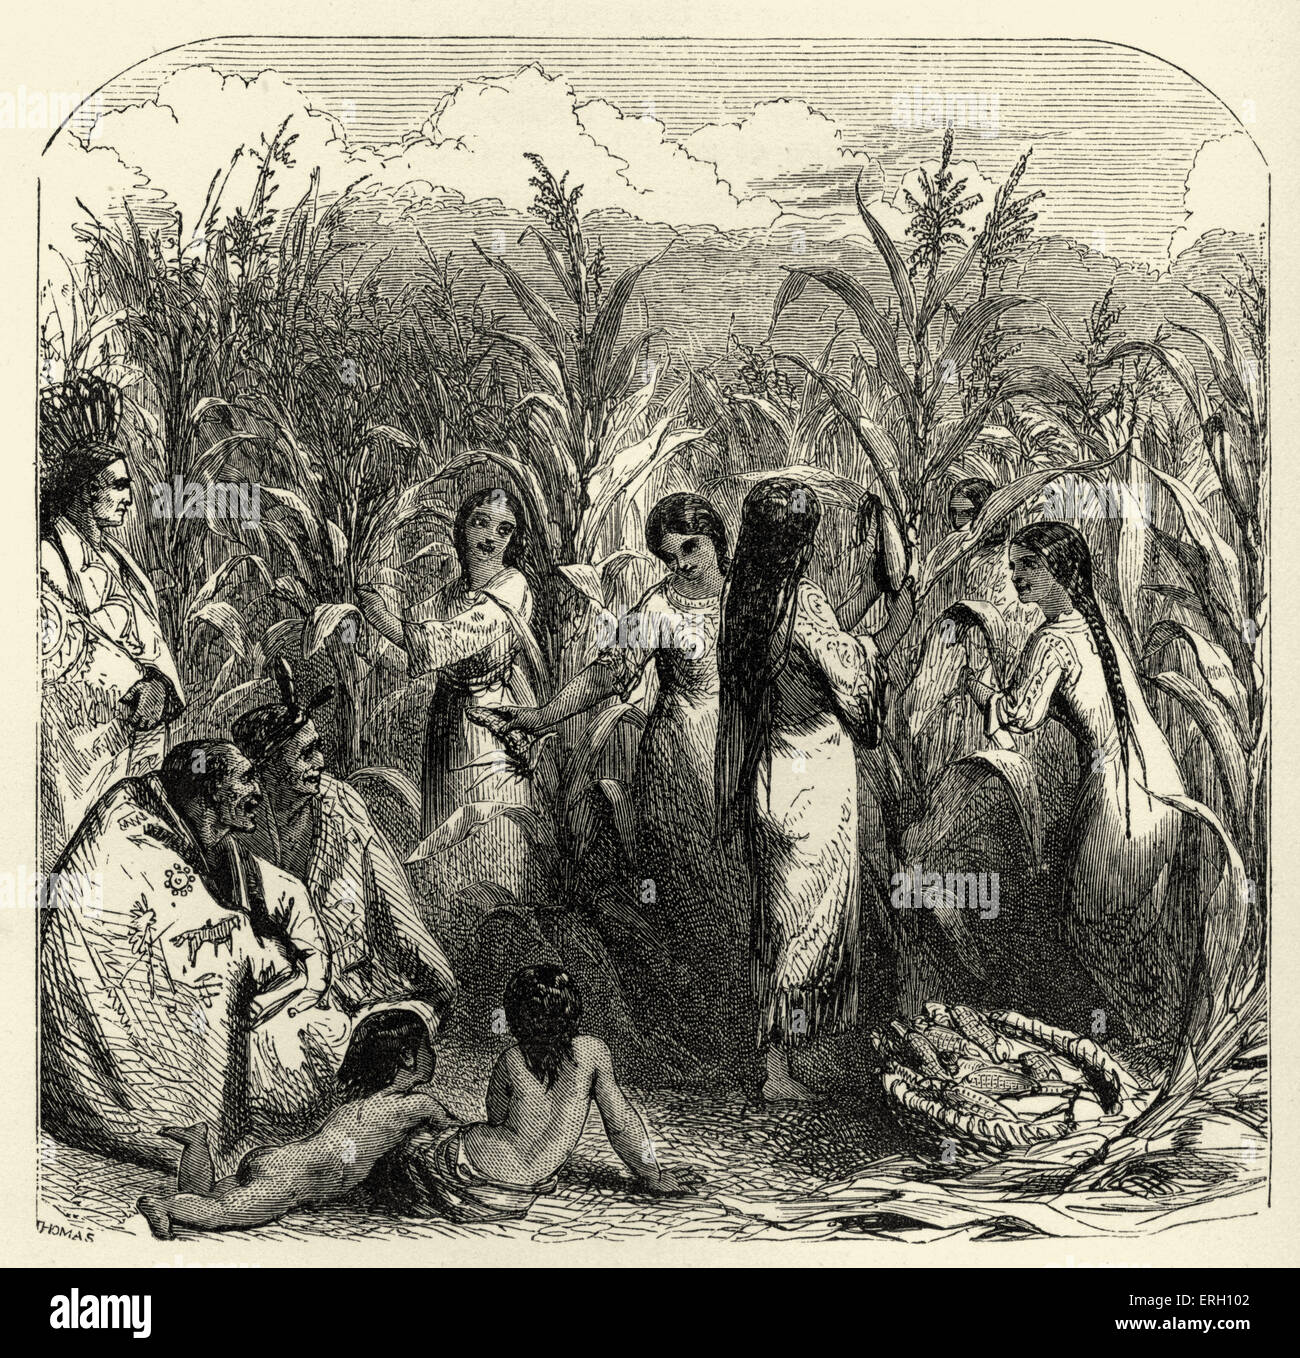 song of hiawatha by henry wadsworth longfellow blessing the song of hiawatha by henry wadsworth longfellow blessing the corn fields looked they at the gamesome labour of the young men and the women